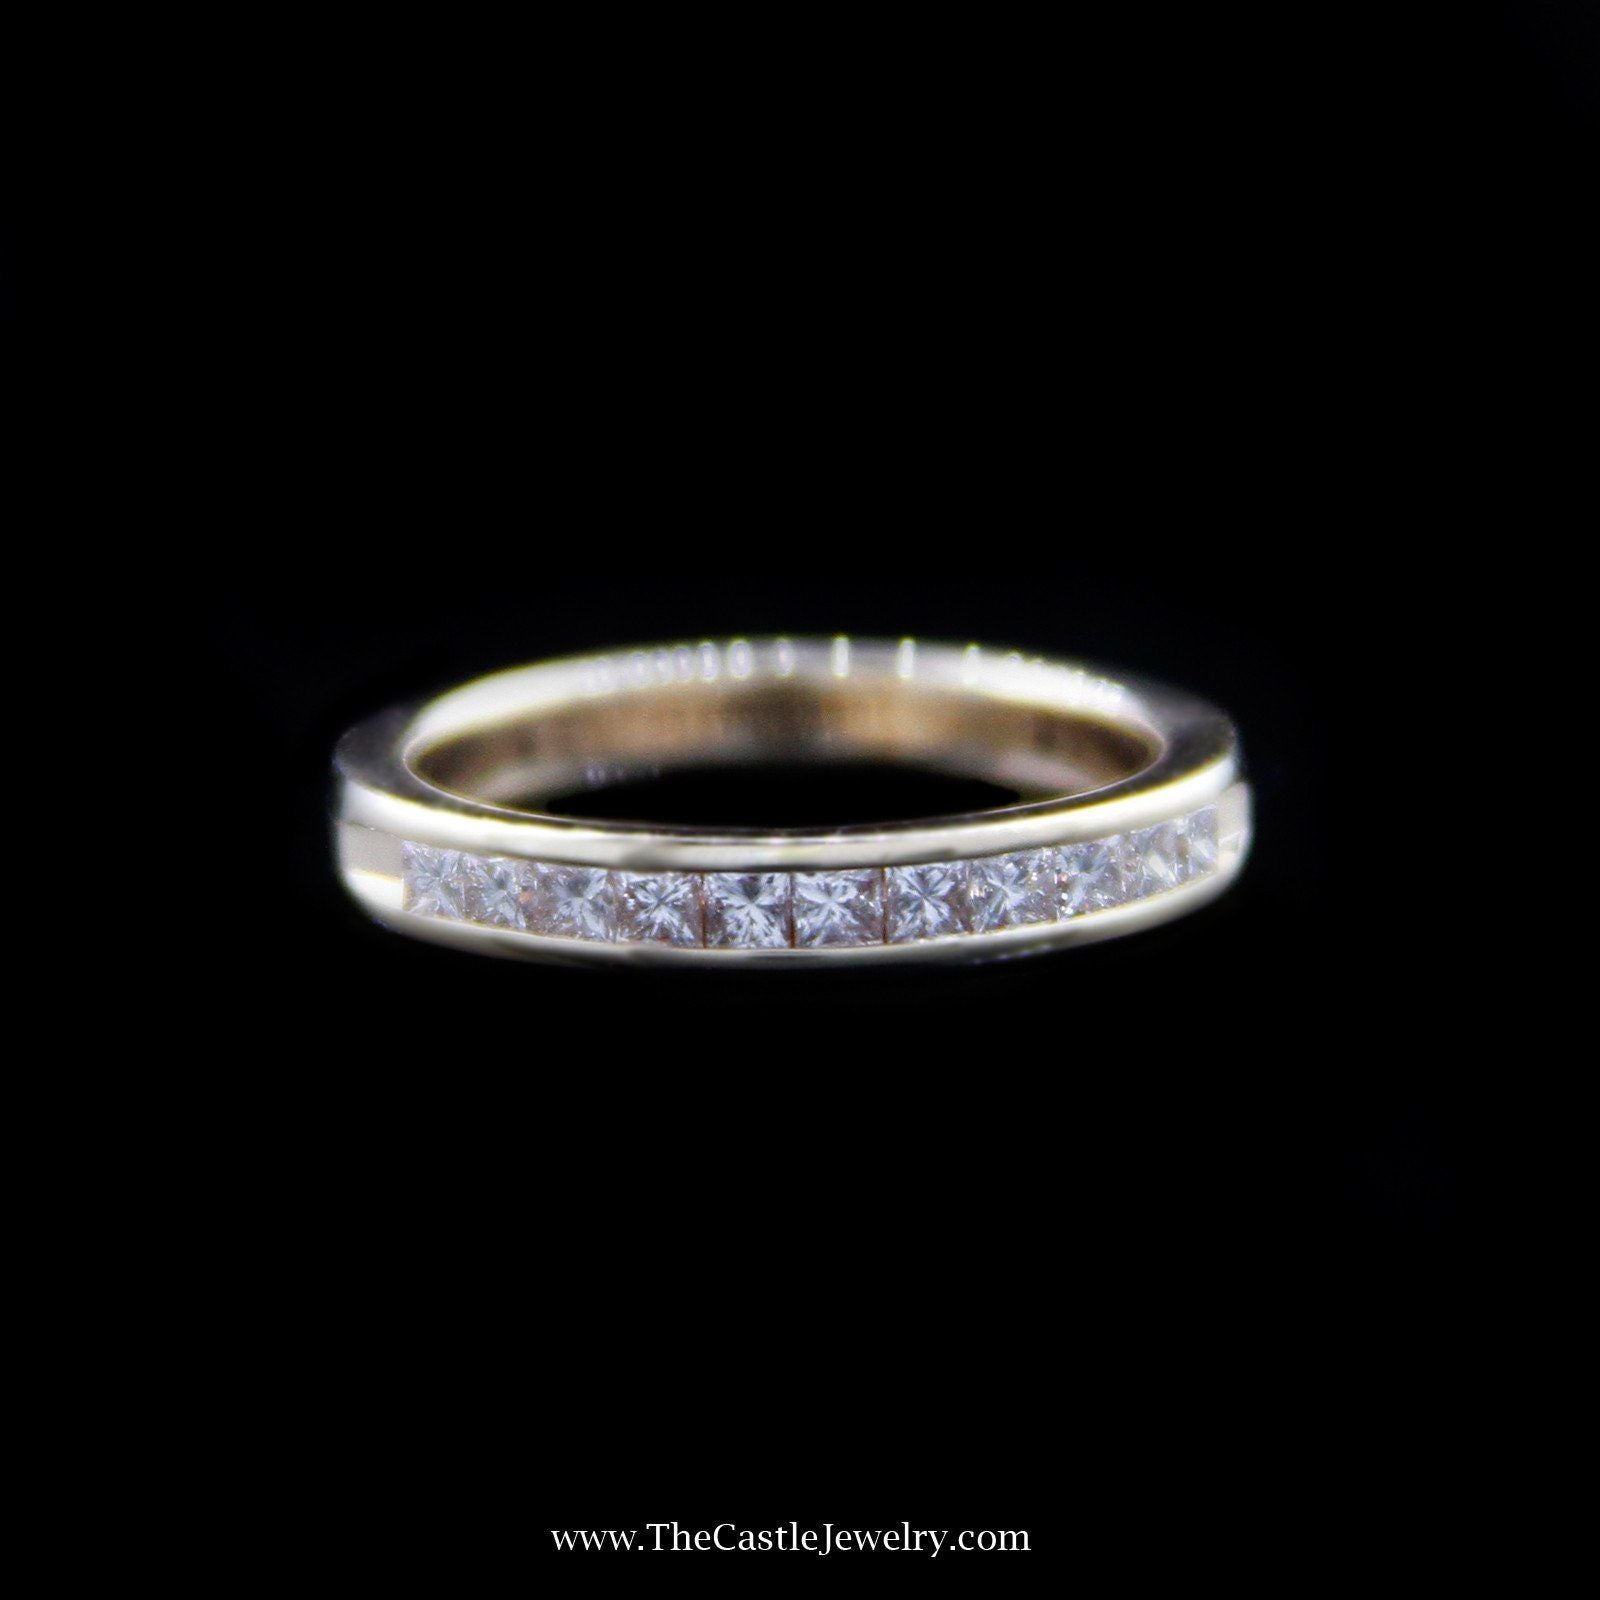 Beautiful Diamond Wedding Band with Princess Cut Diamonds in 14K Yellow Gold